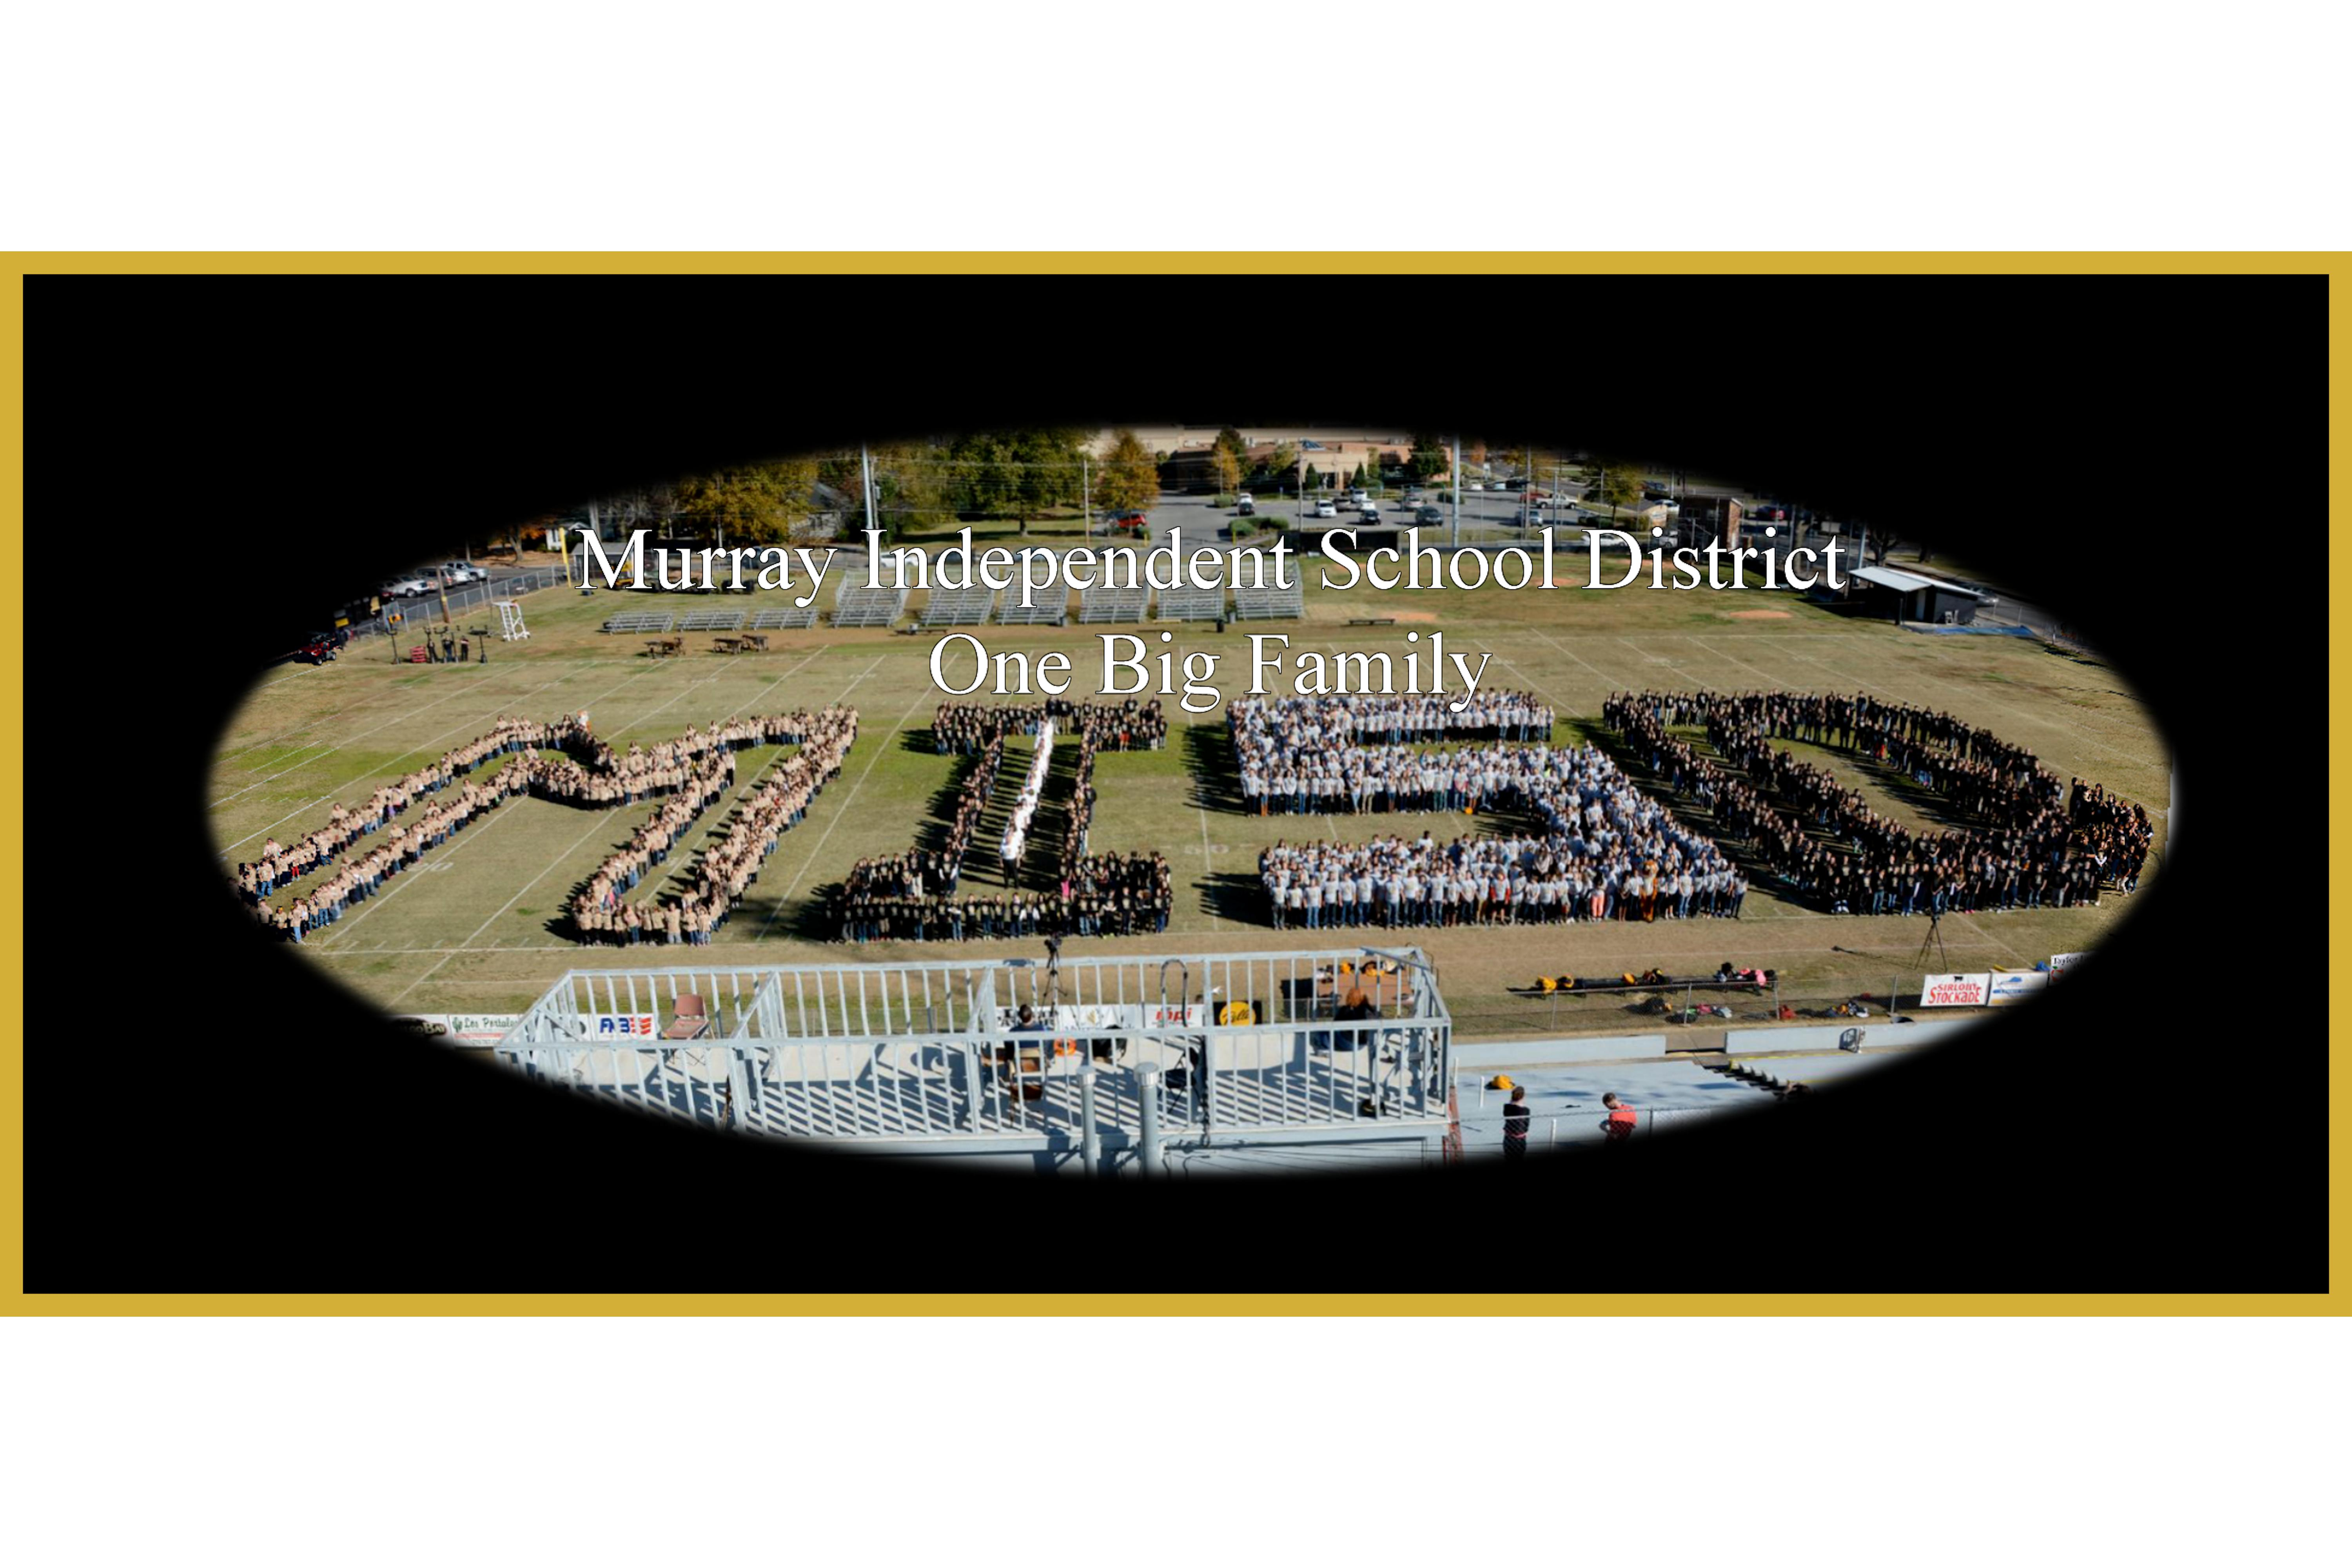 Murray Independent School District Slider Image #5